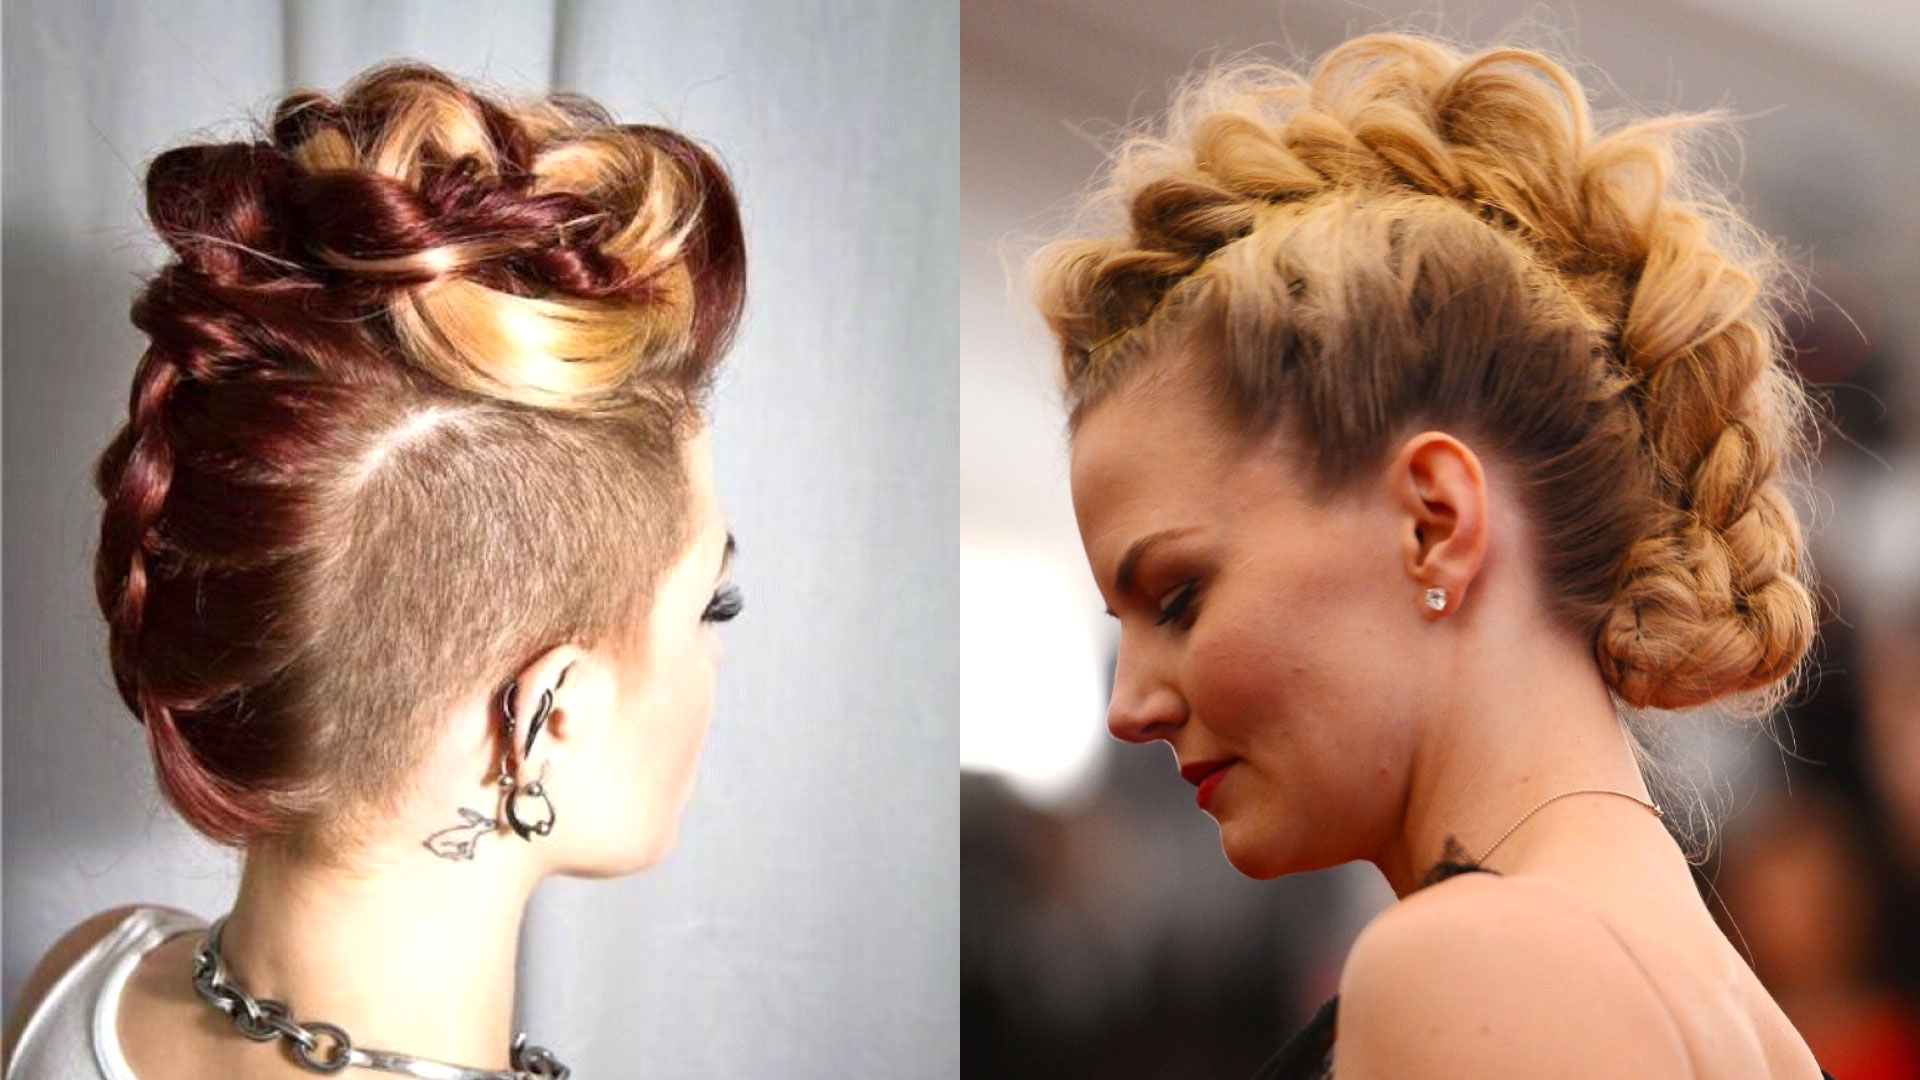 Braided-Mohawk-hairstyles